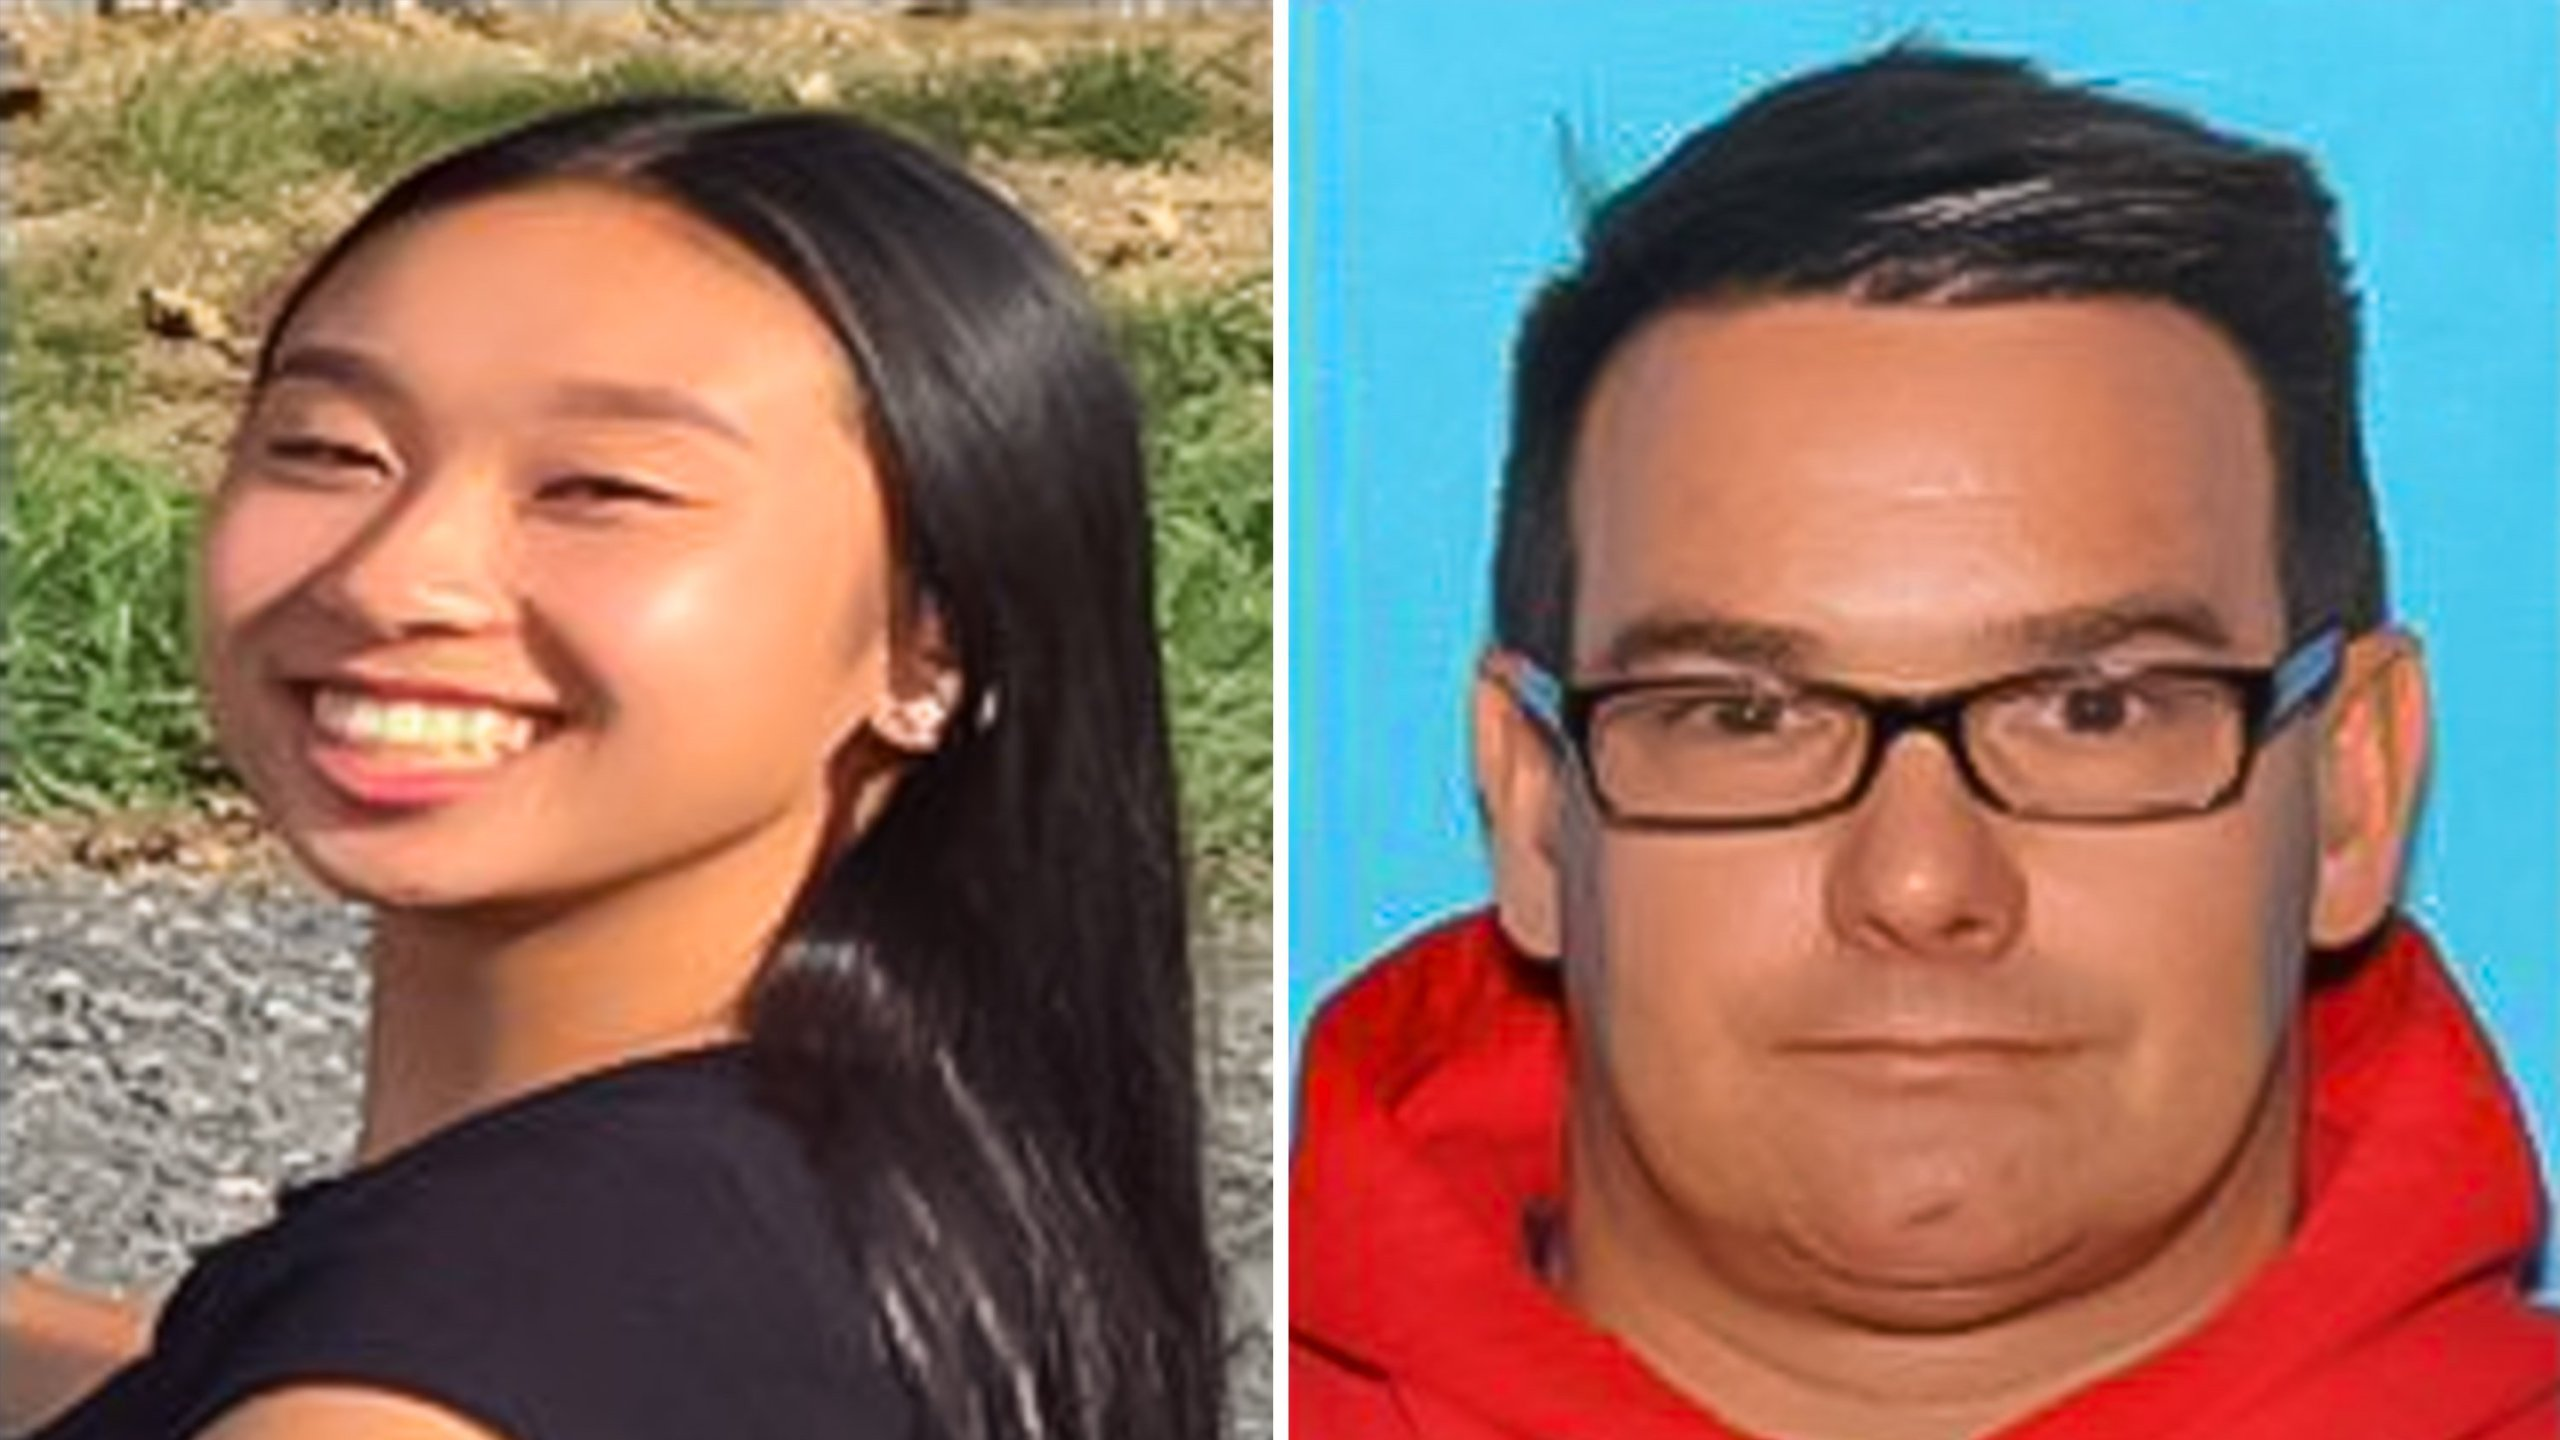 Amy Yu,16, and 45-year-old Kevin Esterly are seen in photos released by the Allentown Police Department.